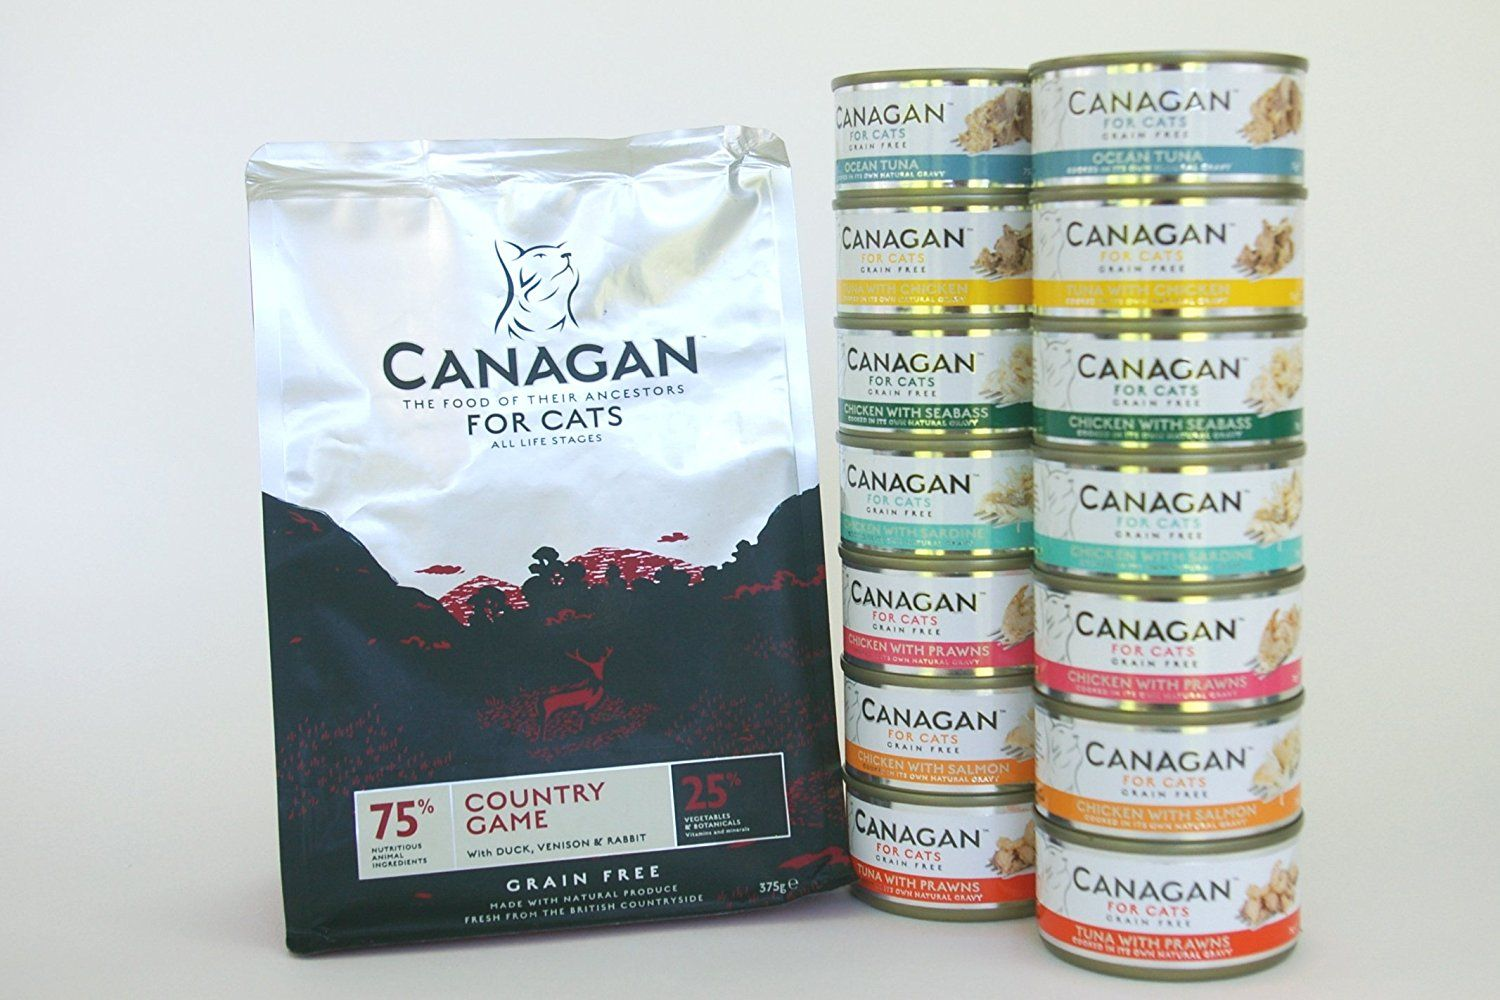 Canagan Wet And Dry Food Mixed Selection Visit The Image Link For More Details Catfood Cat Food Wet And Dry Food